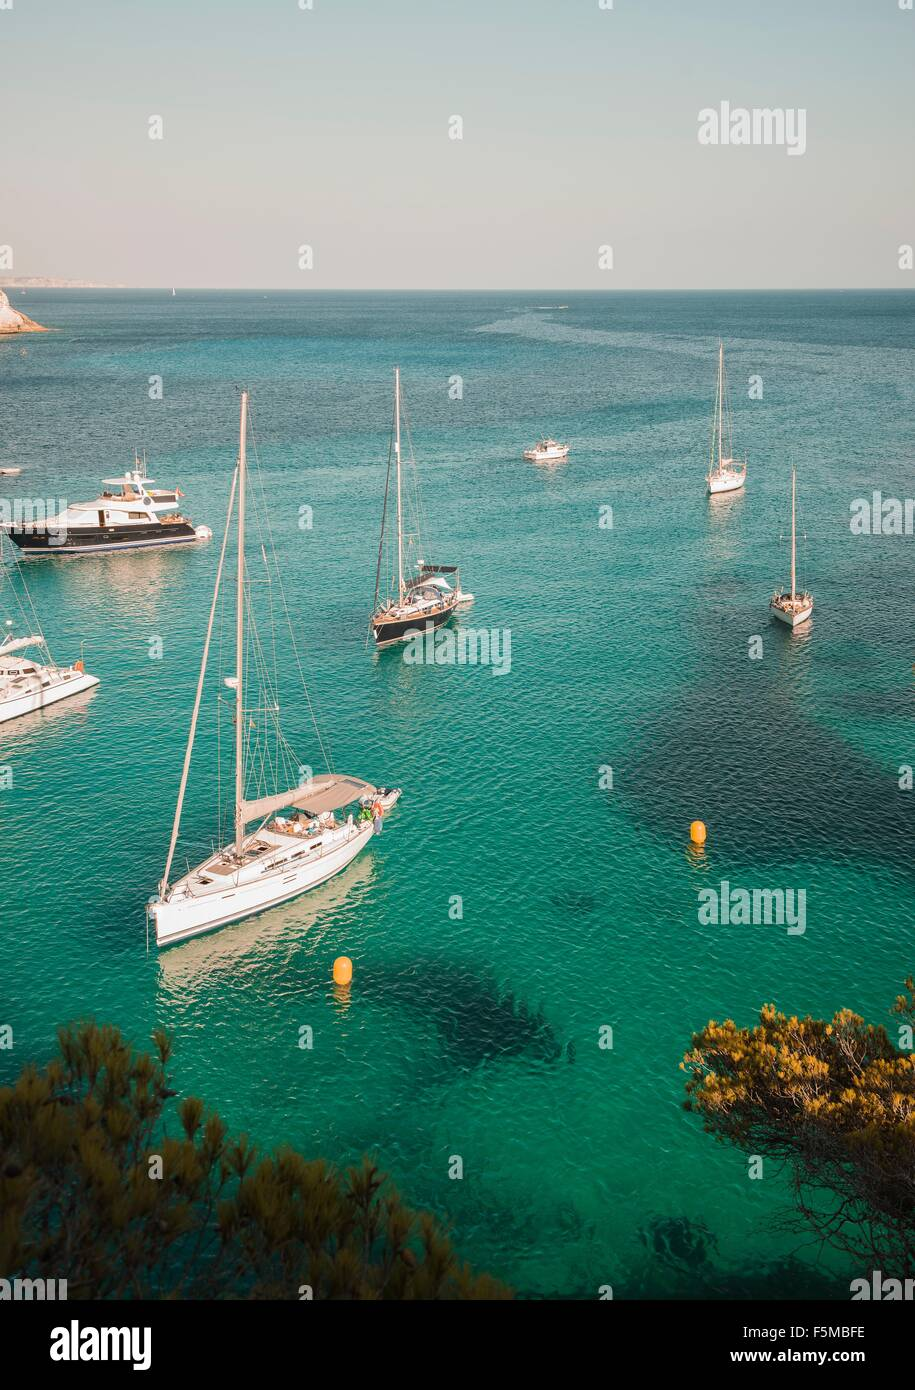 Yachts anchored in bay at Cala Macarella, Menorca, Spain Stock Photo